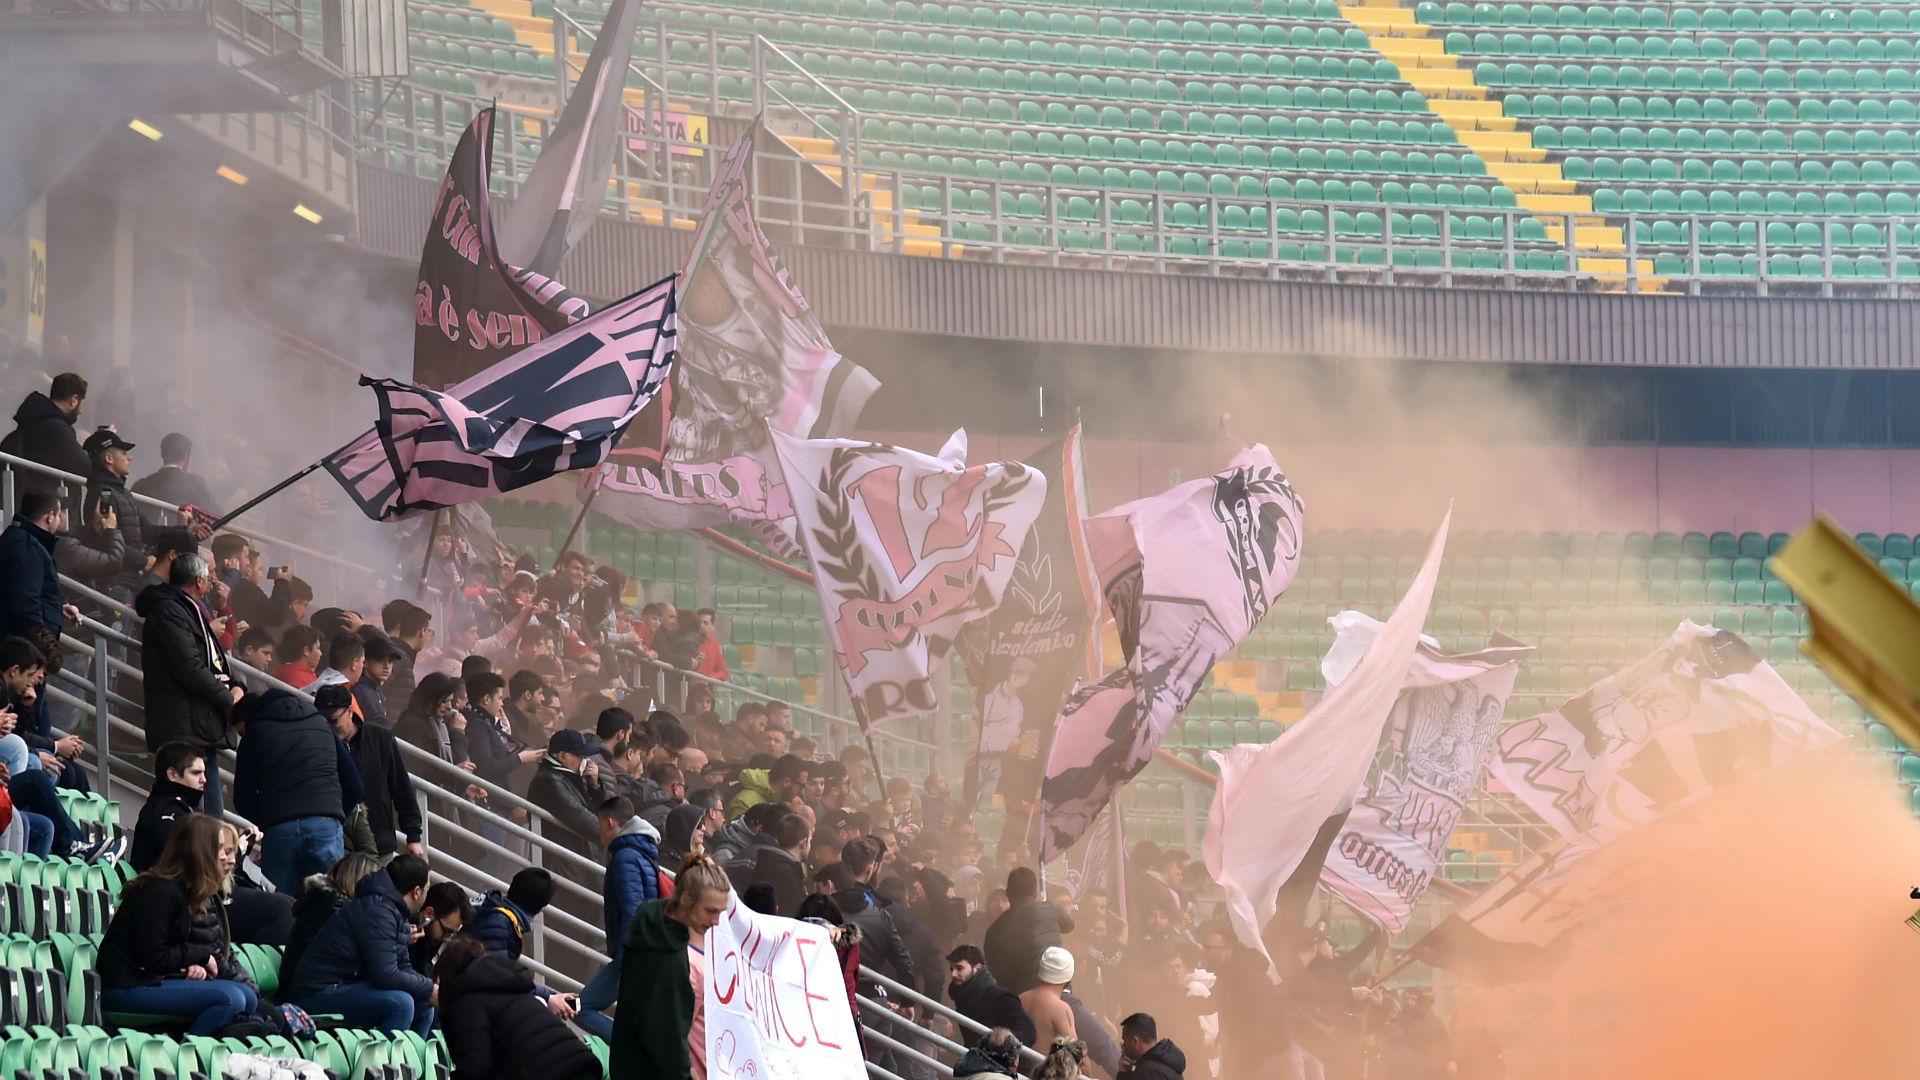 Palermo relegated to Serie C due to financial issues